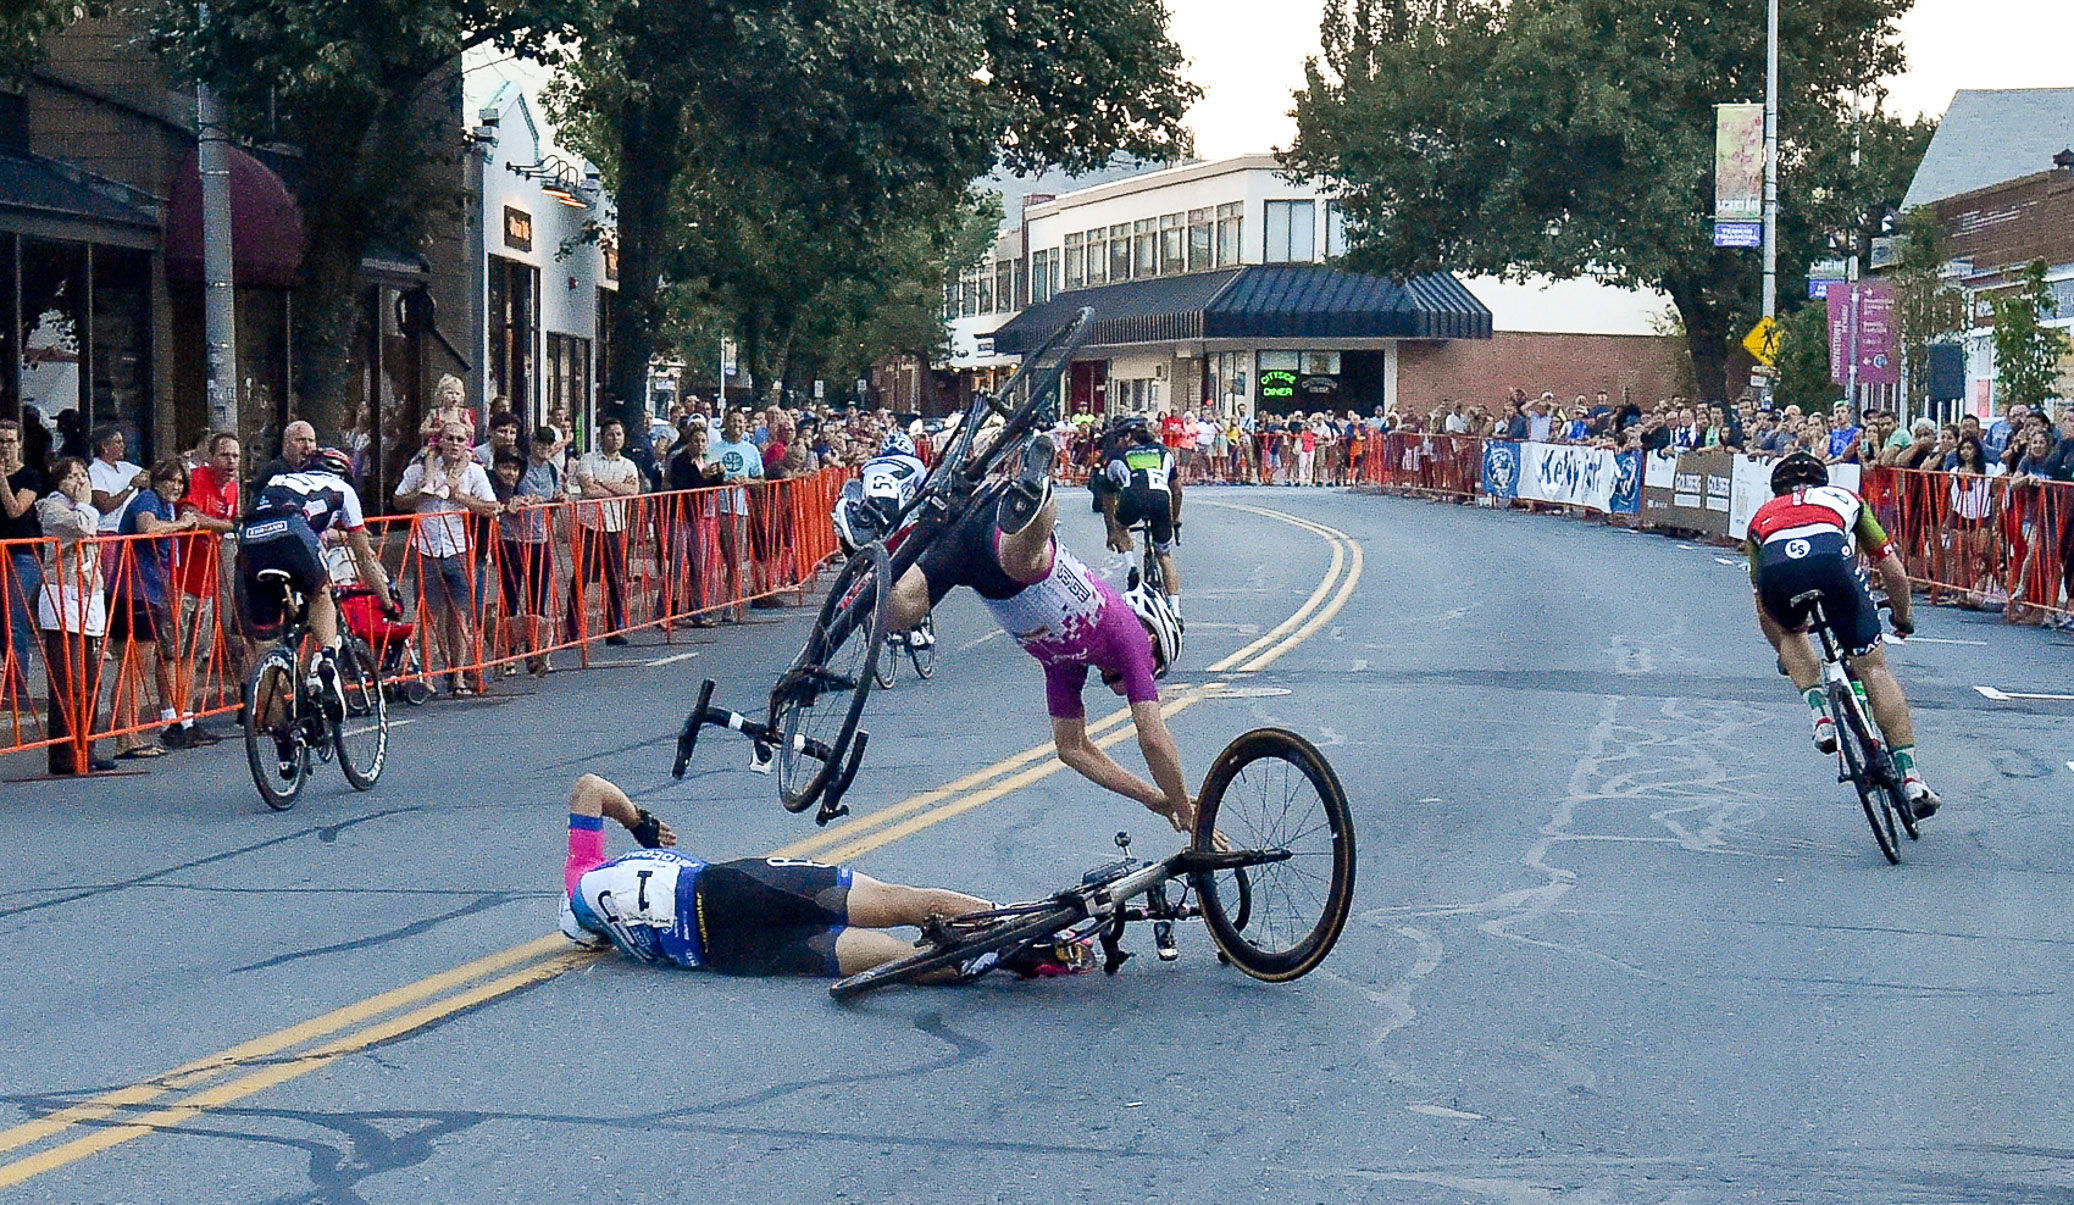 3rd, Sports Photo  Lucas Fortini is seen flying through the air after making contact Sam Rosenholtz who crashed after crossing the finish line at the conclusion of the Men's State Championship Race during The Gran Prix of Beverly on Wednesday, July 26, 2017.